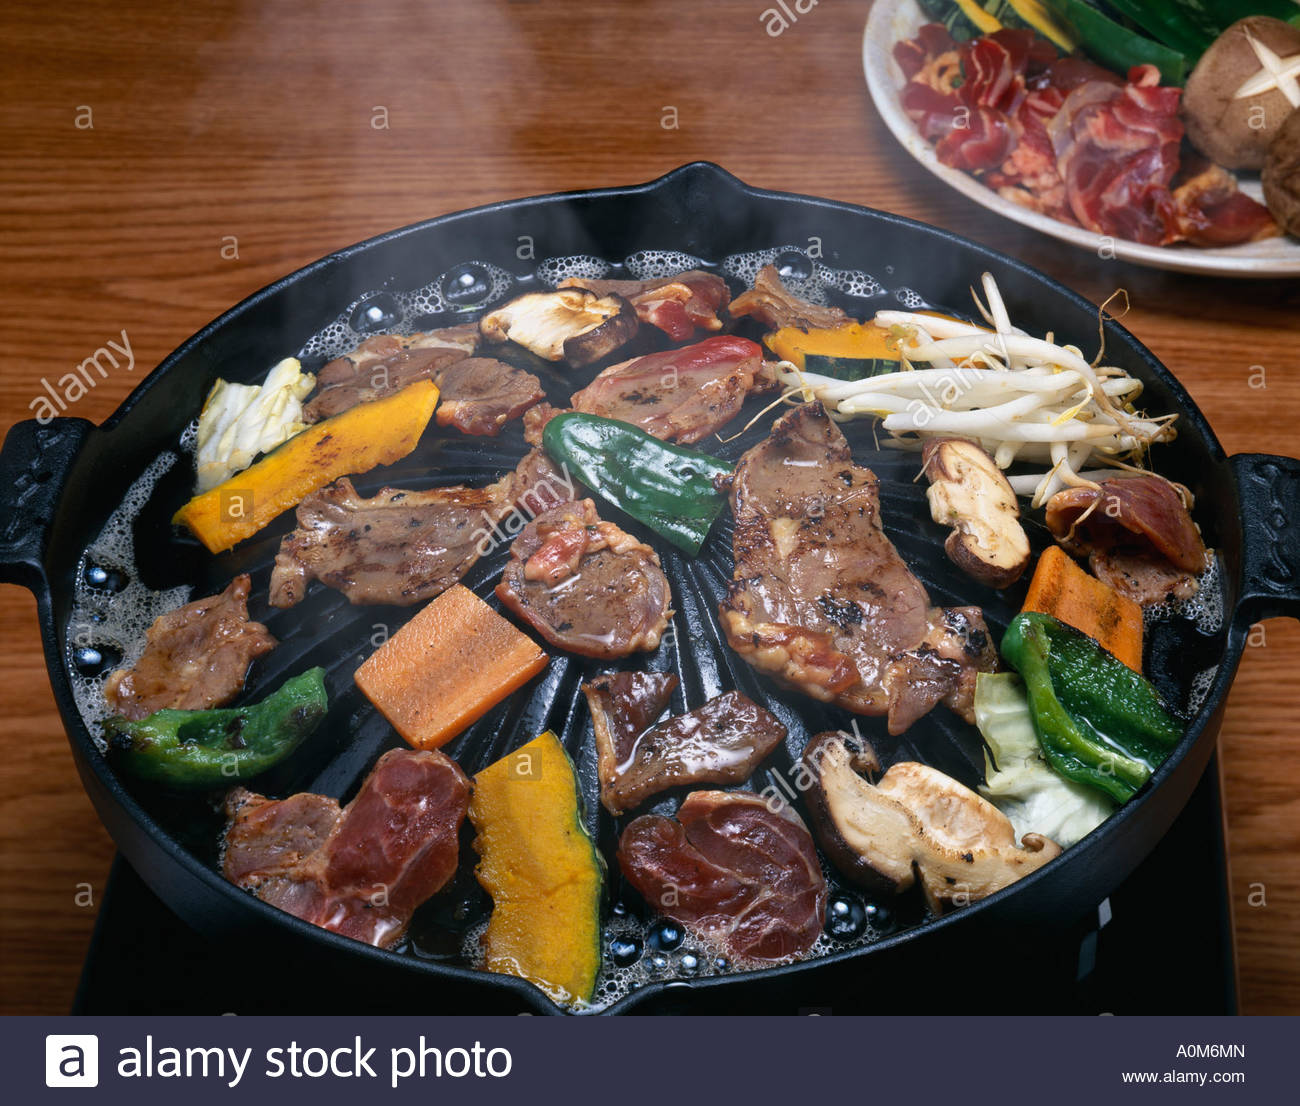 Genghis khan japan japanese cuisine stock photo royalty for About japanese cuisine